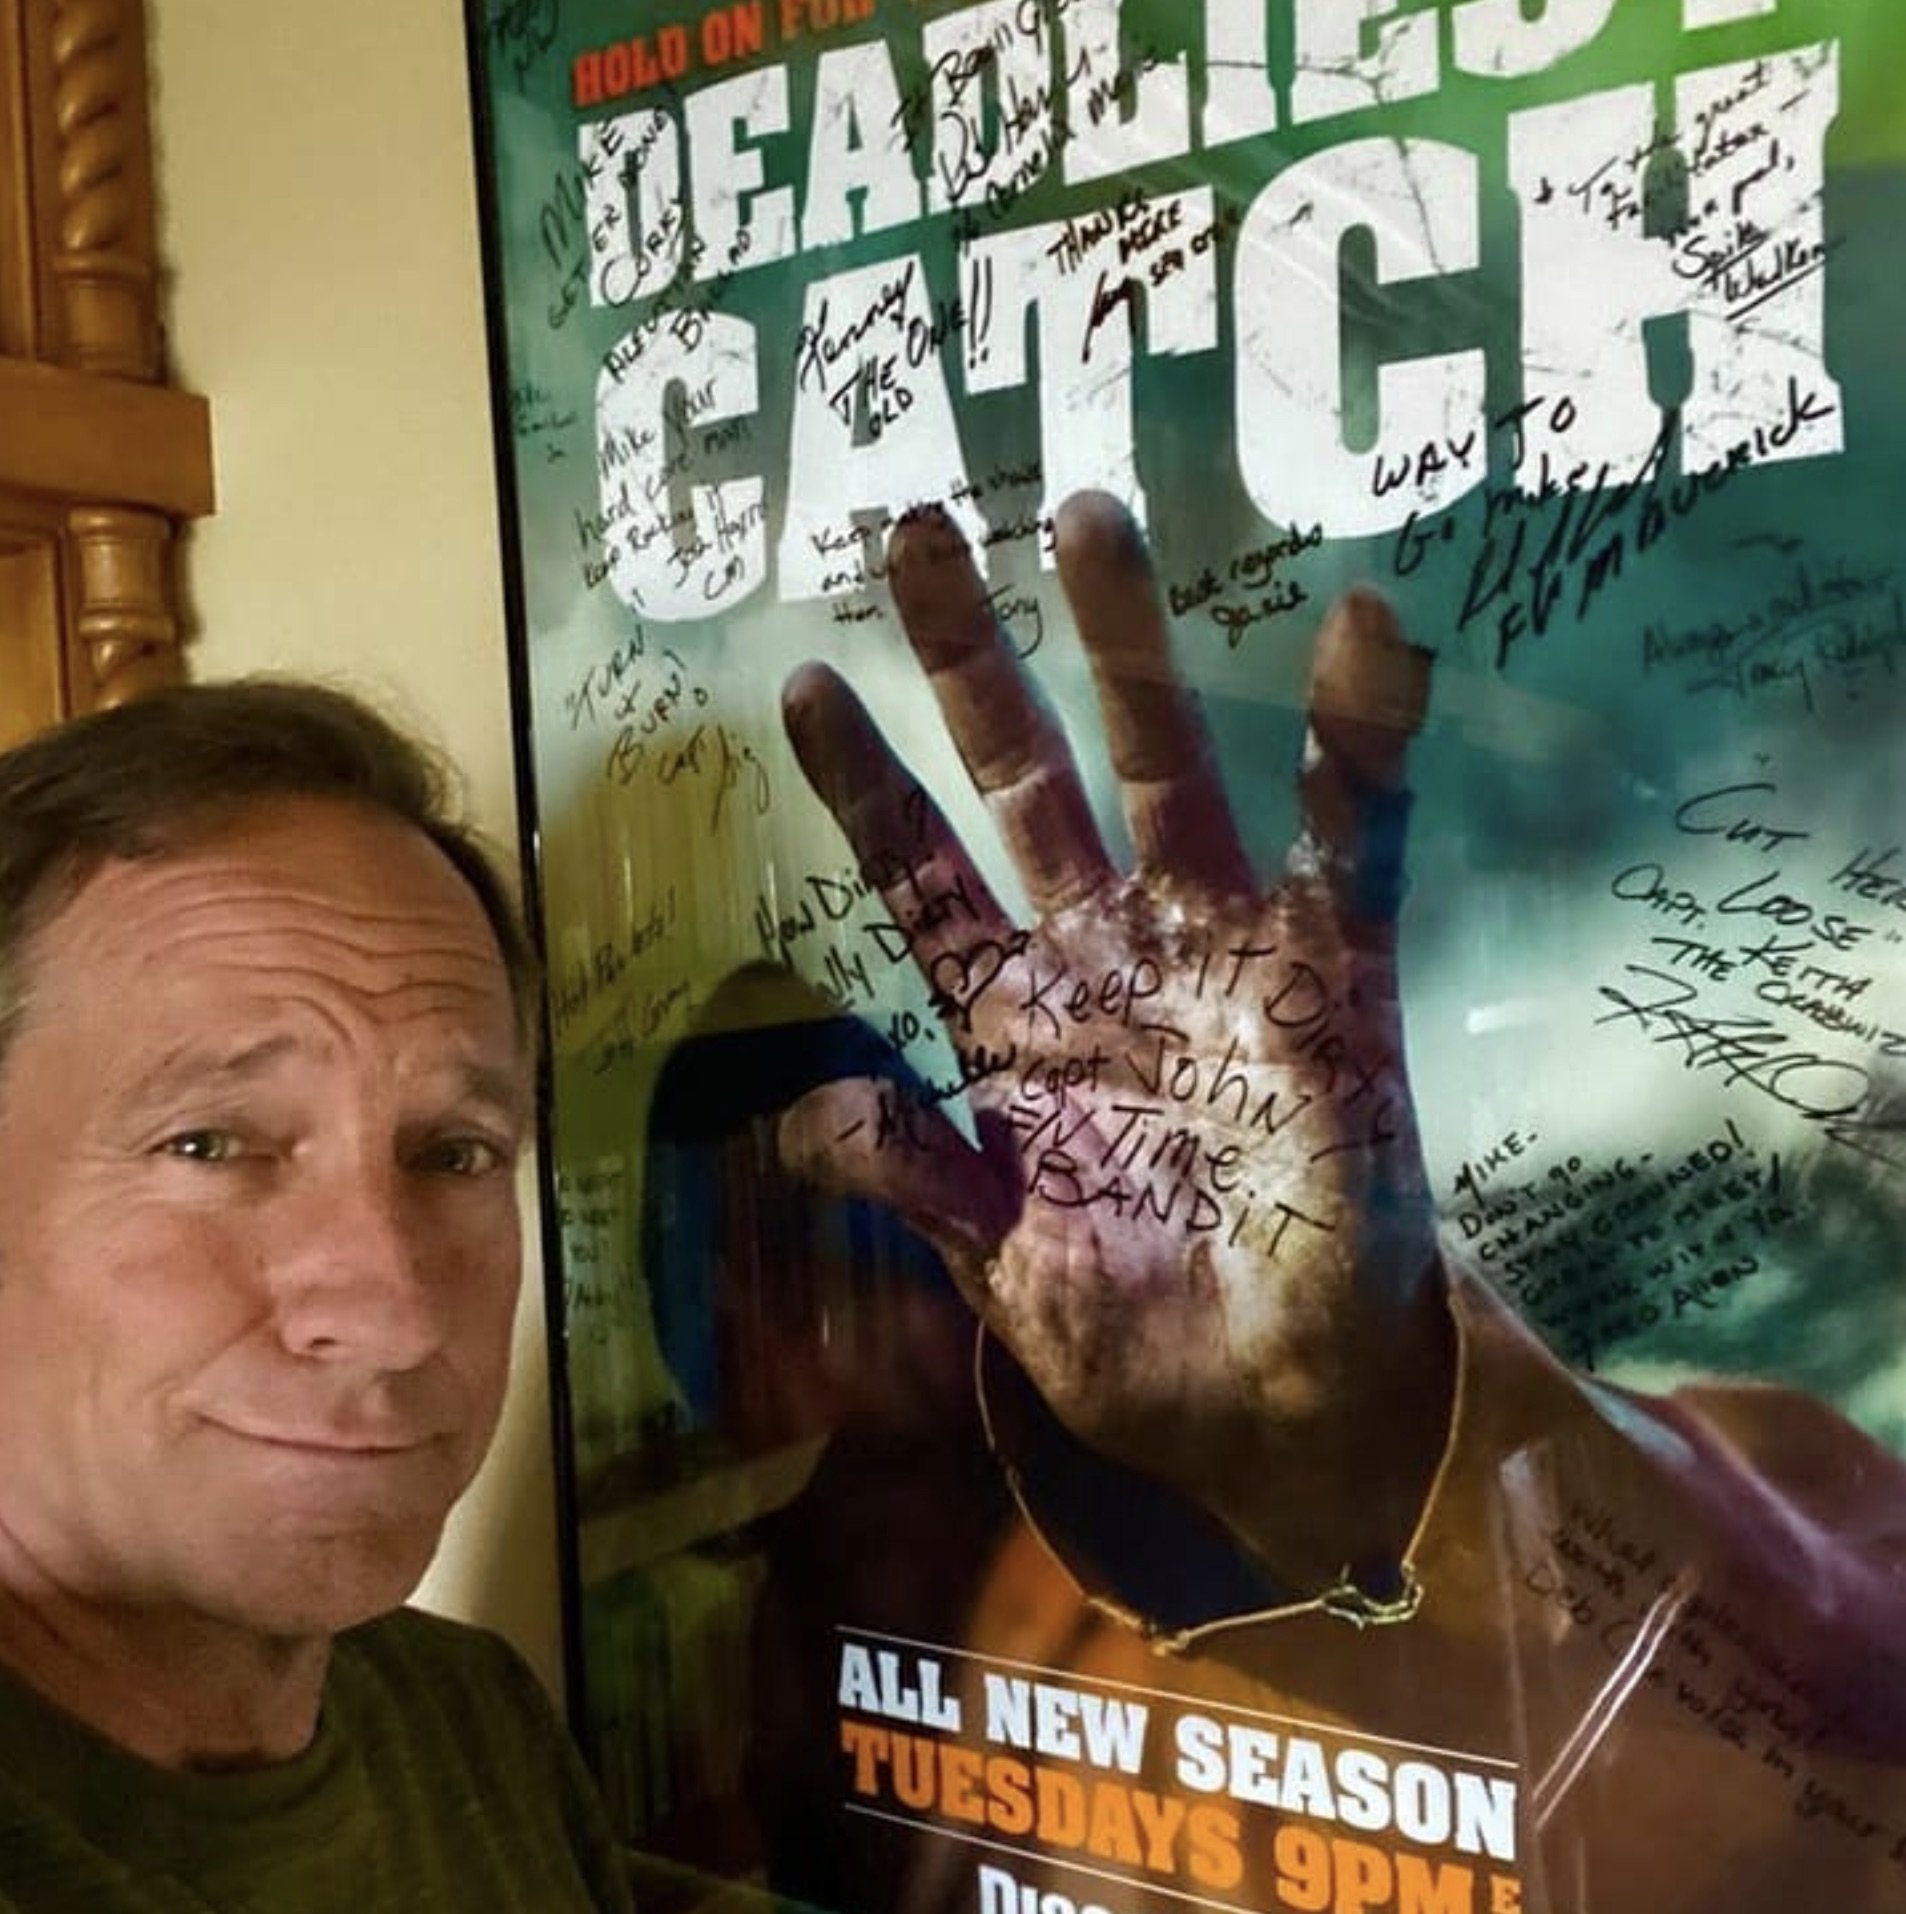 MIke Rowe, Deadliest Catch, After The Catch-https://www.instagram.com/p/B-TC6Xupdr6/